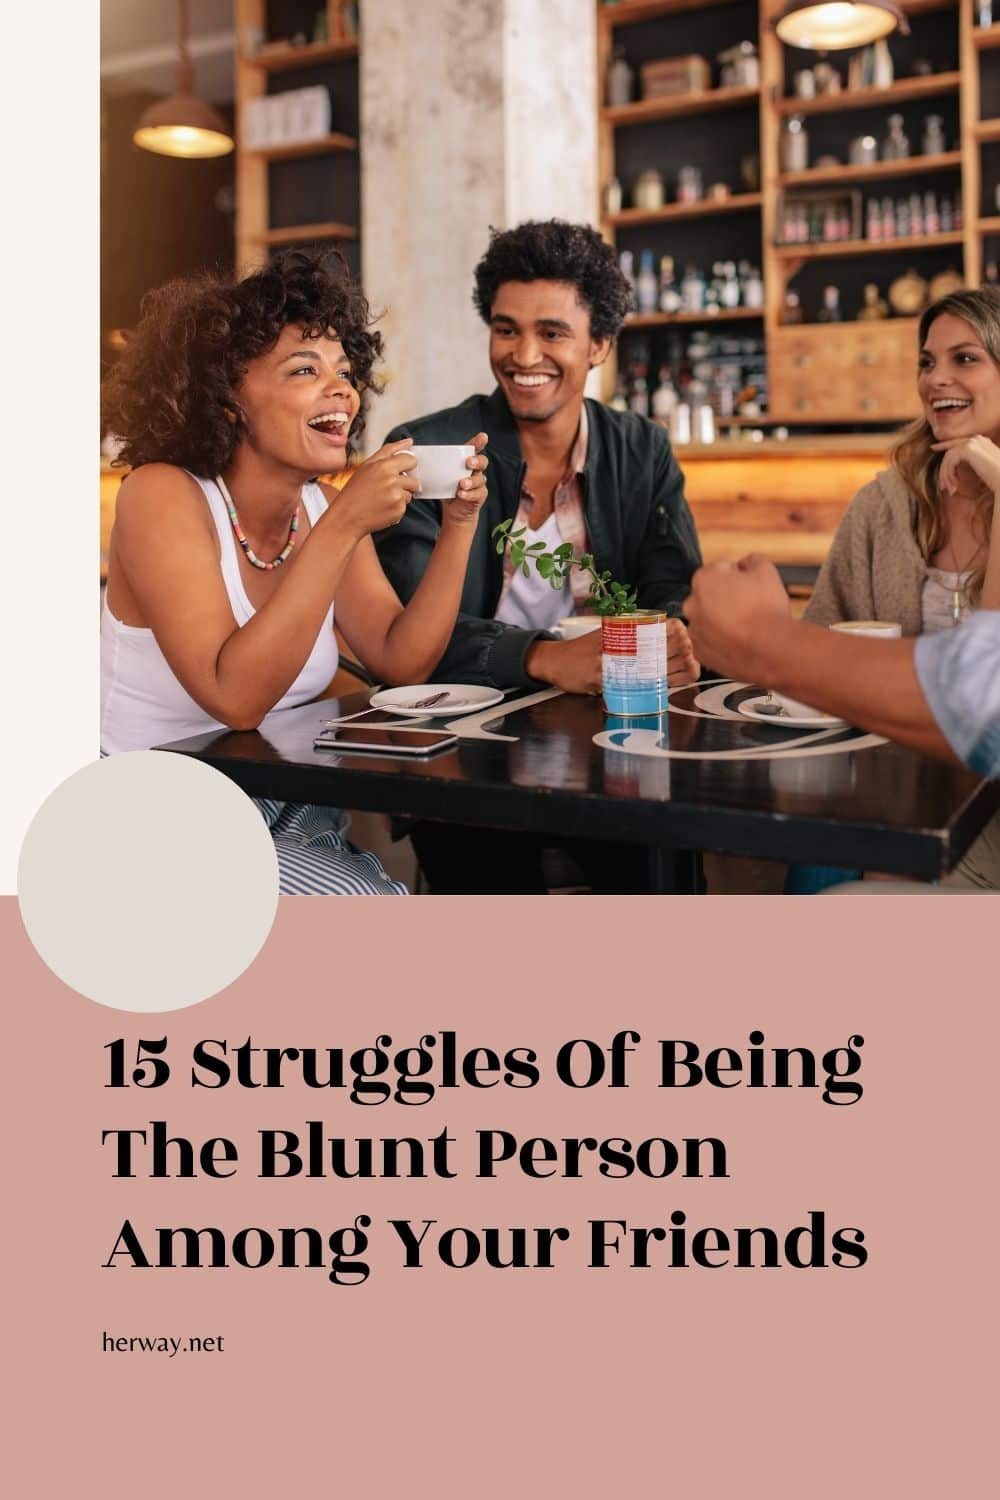 15 Struggles Of Being The Blunt Person Among Your Friends